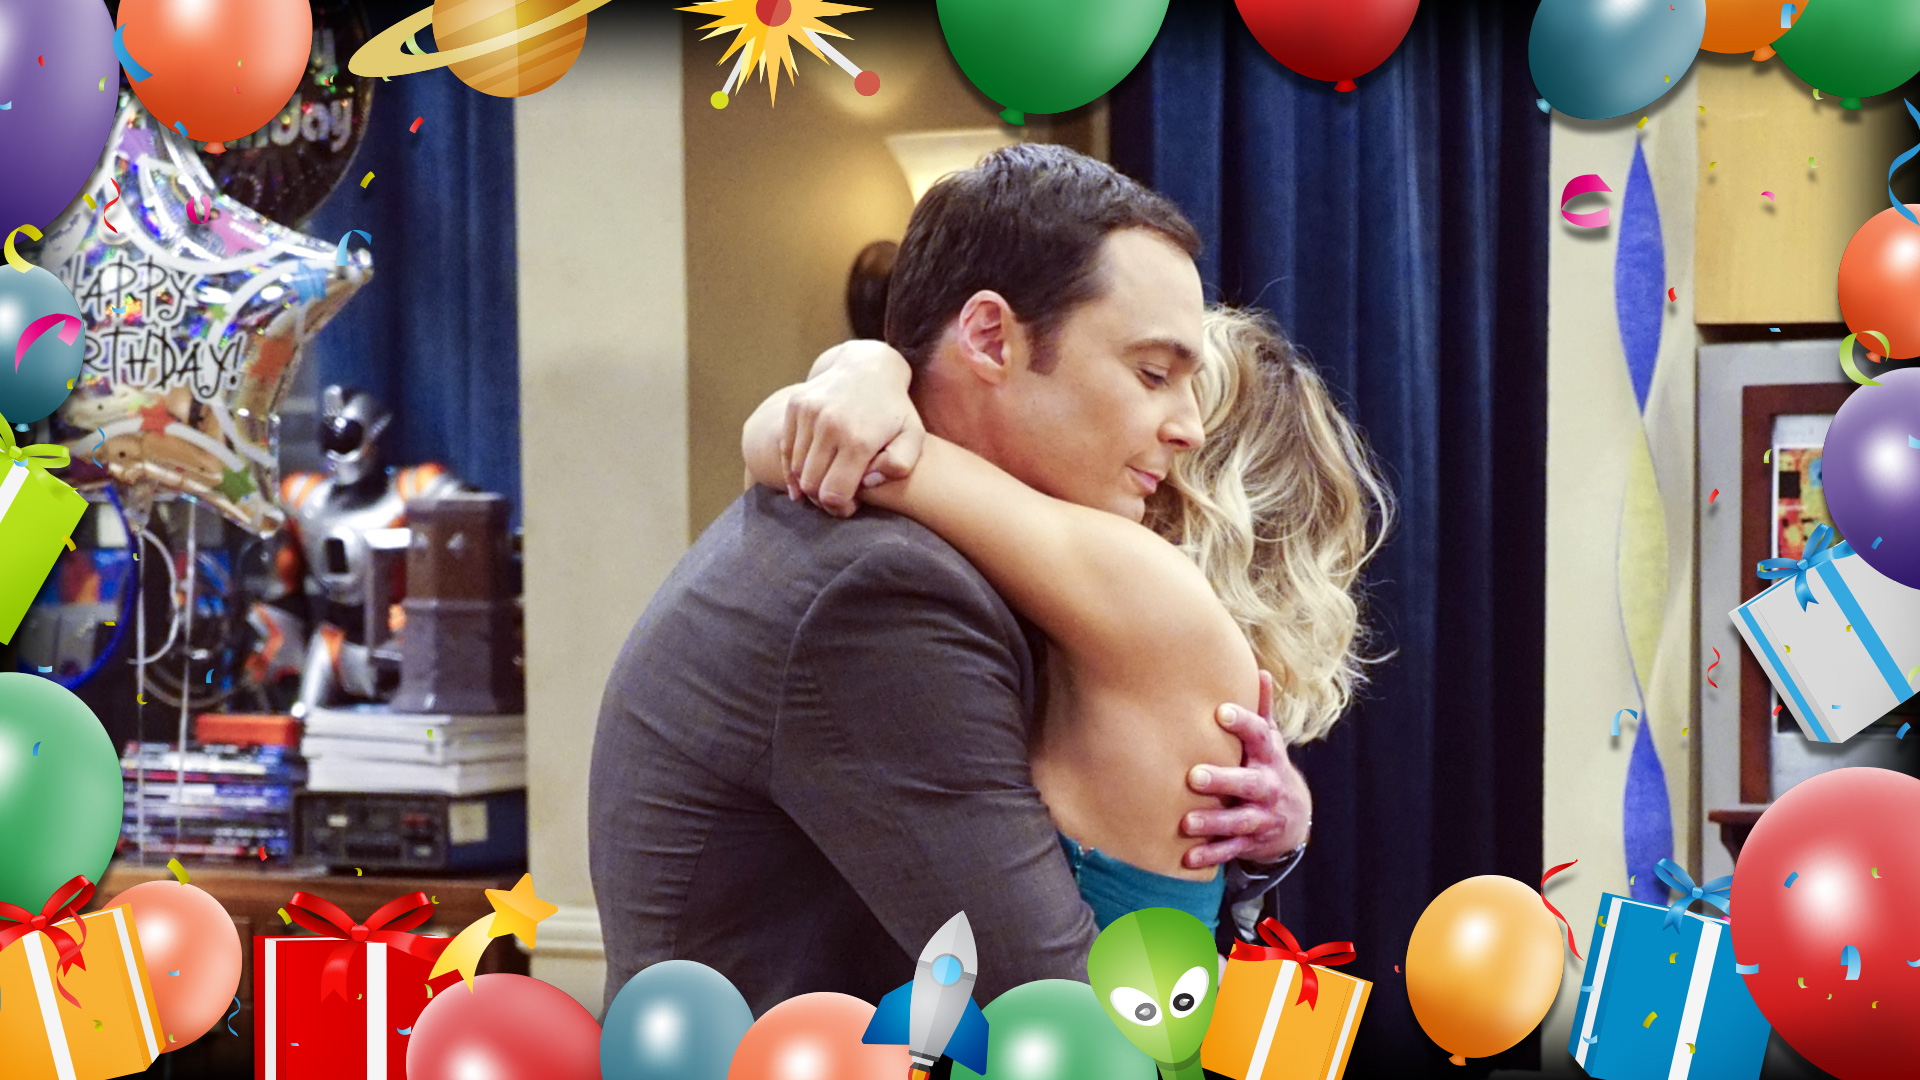 Sheldon and Penny embrace on the big day.